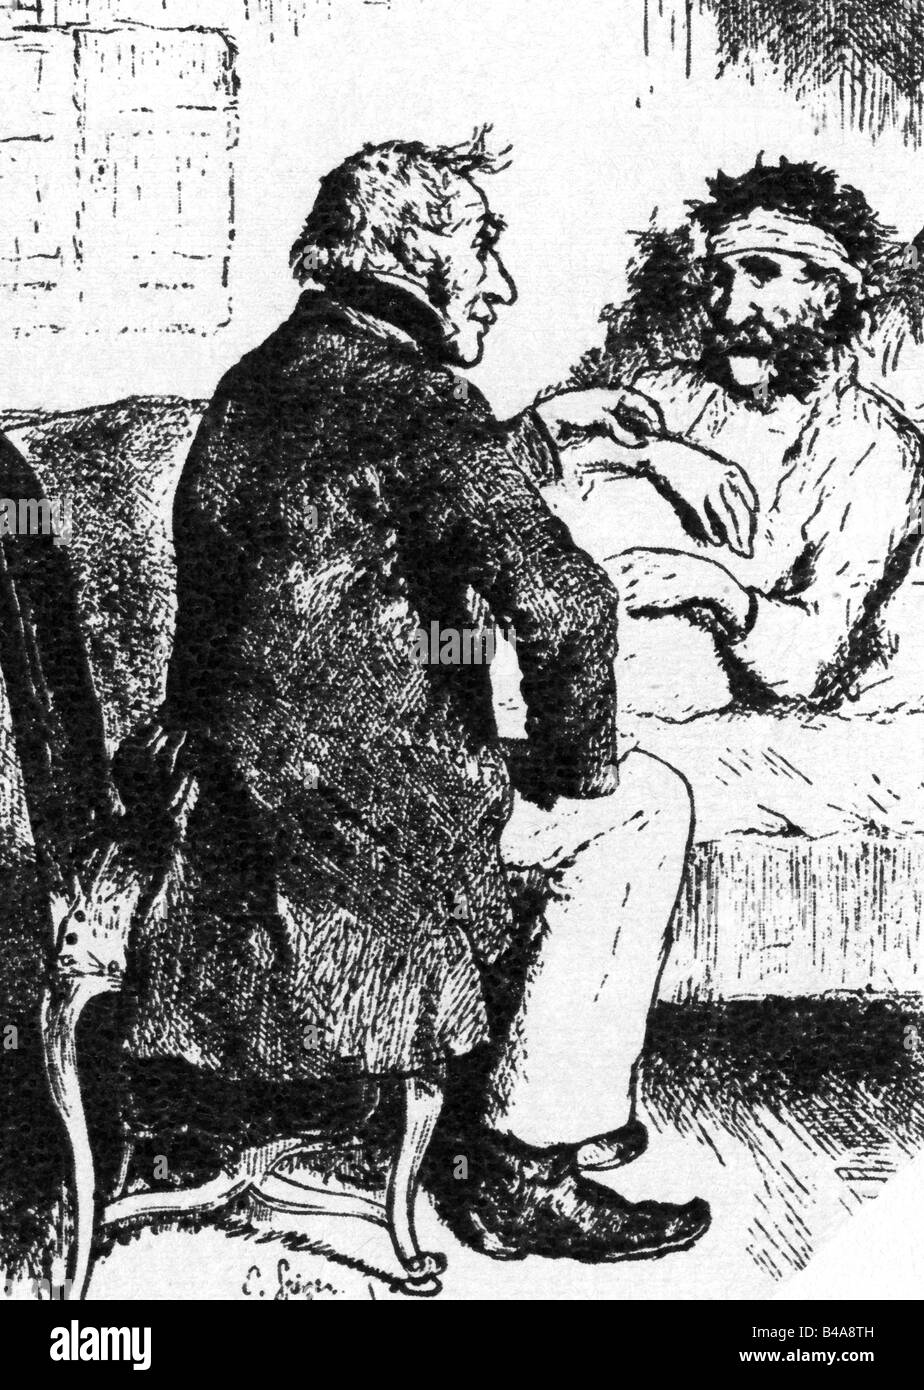 medicine, physicians, caricature, physician an patient, drawing by Emanuel Spitzer, 'Fliegende Blätter', - Stock Image